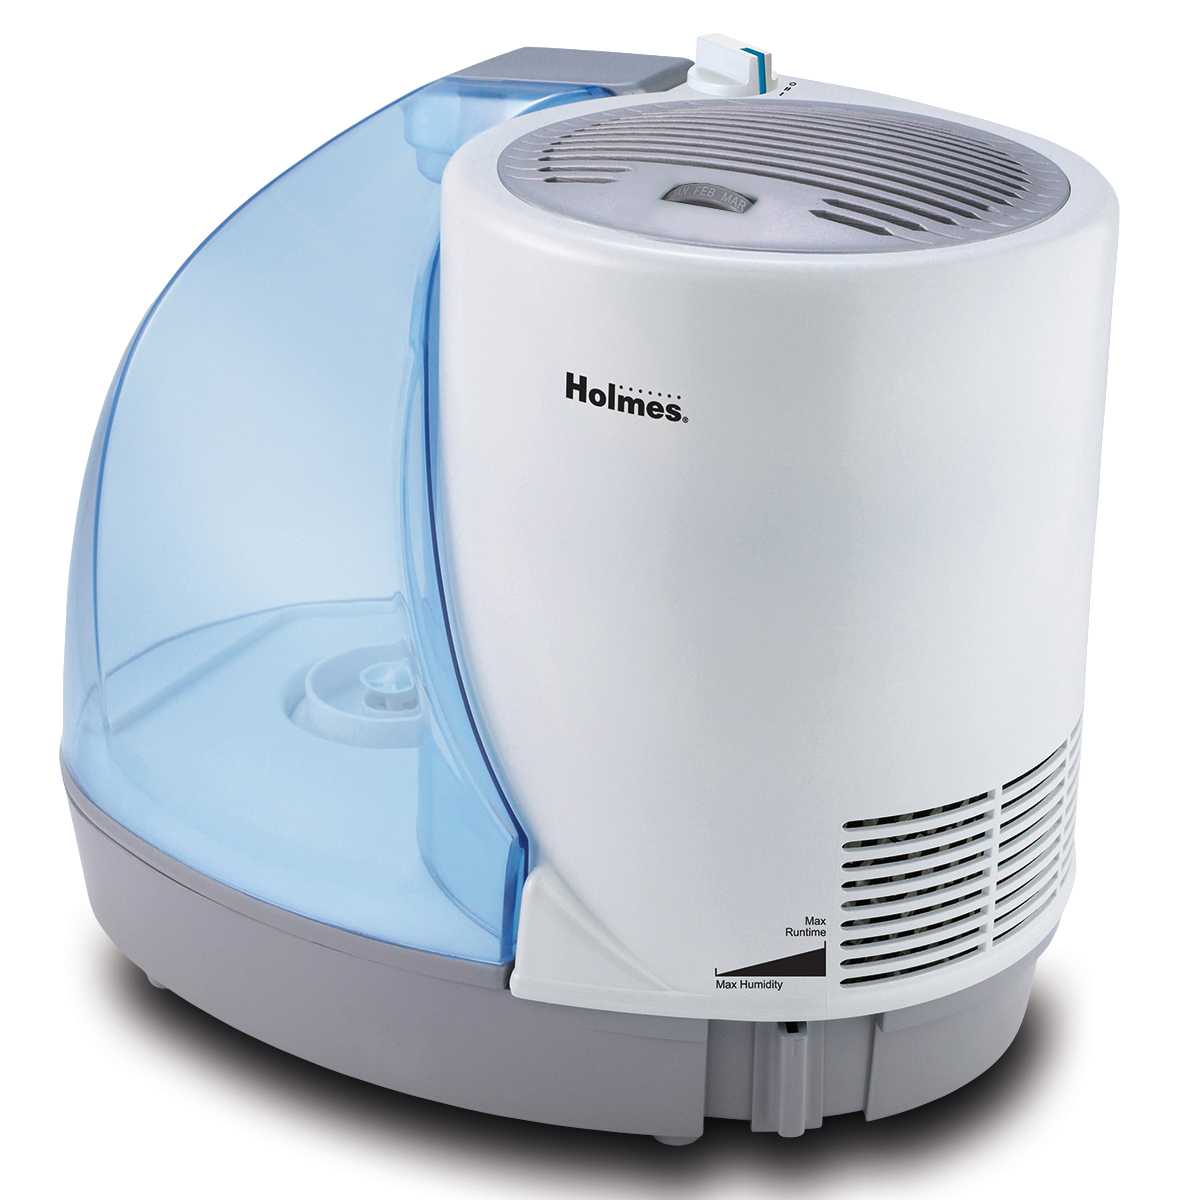 Holmes Antimicrobial Cool Mist Humidifier 1 Gallon | HM1761-U